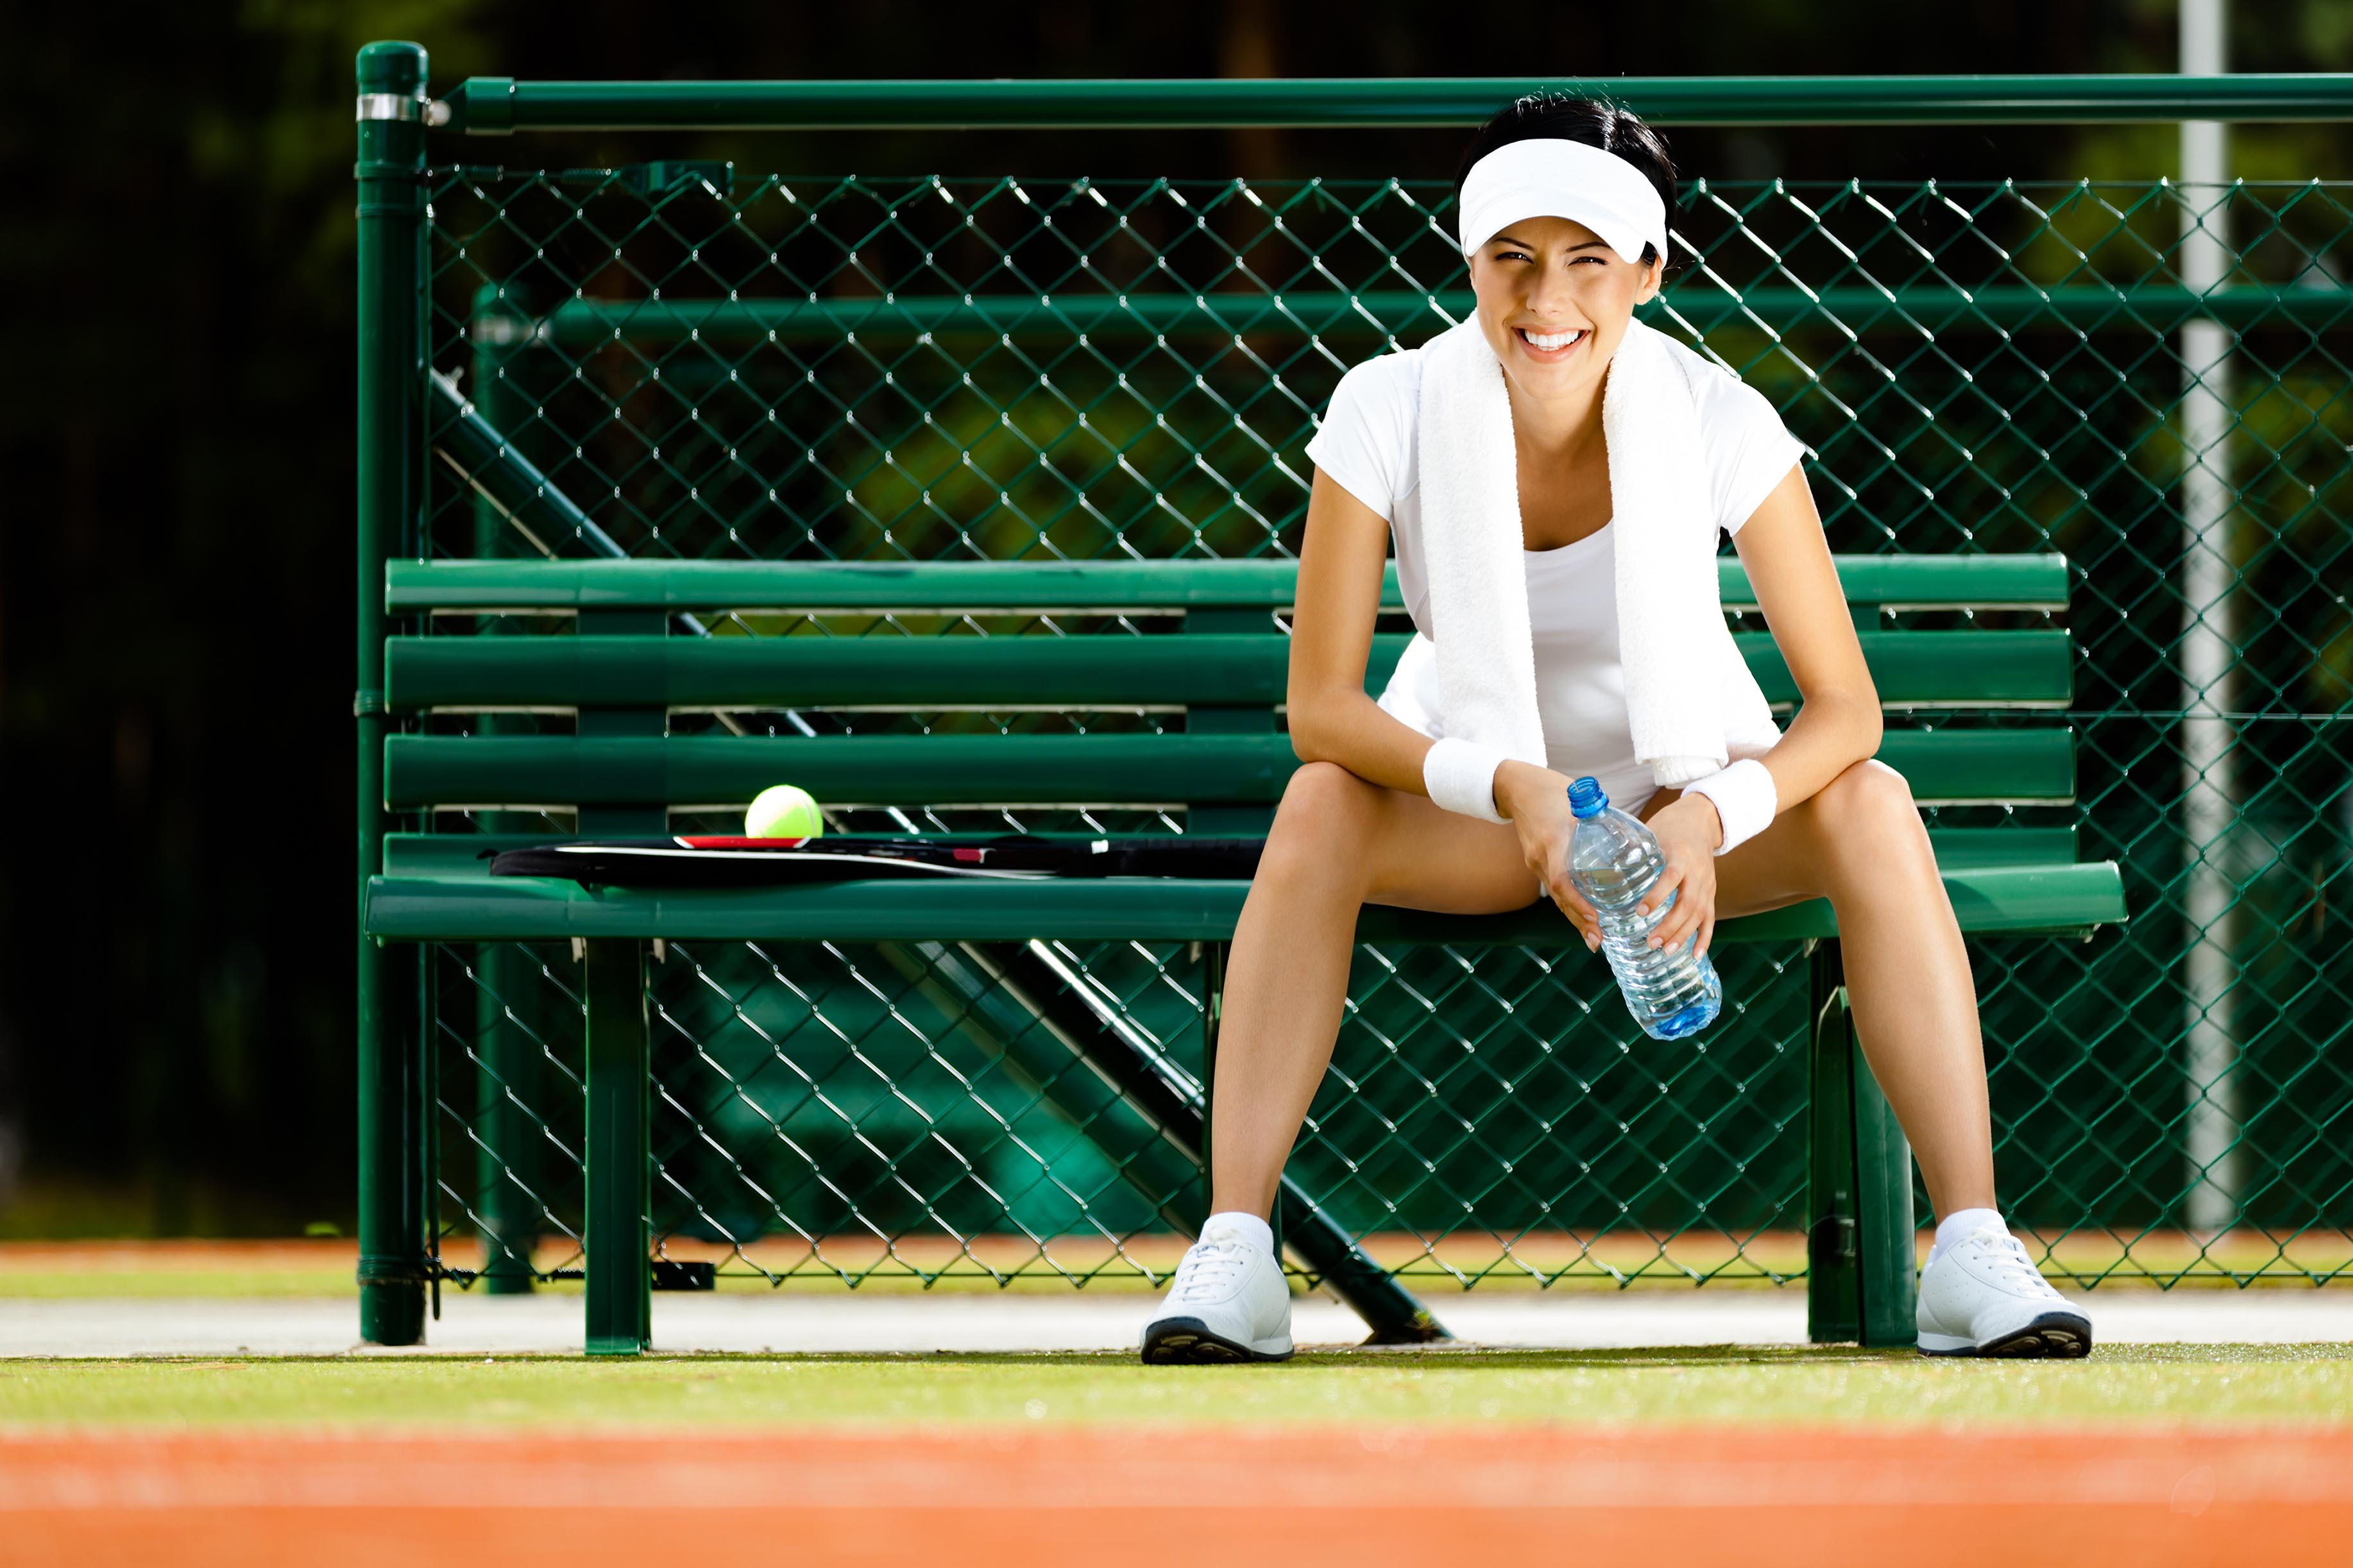 how-to-get-started-playing-tennis